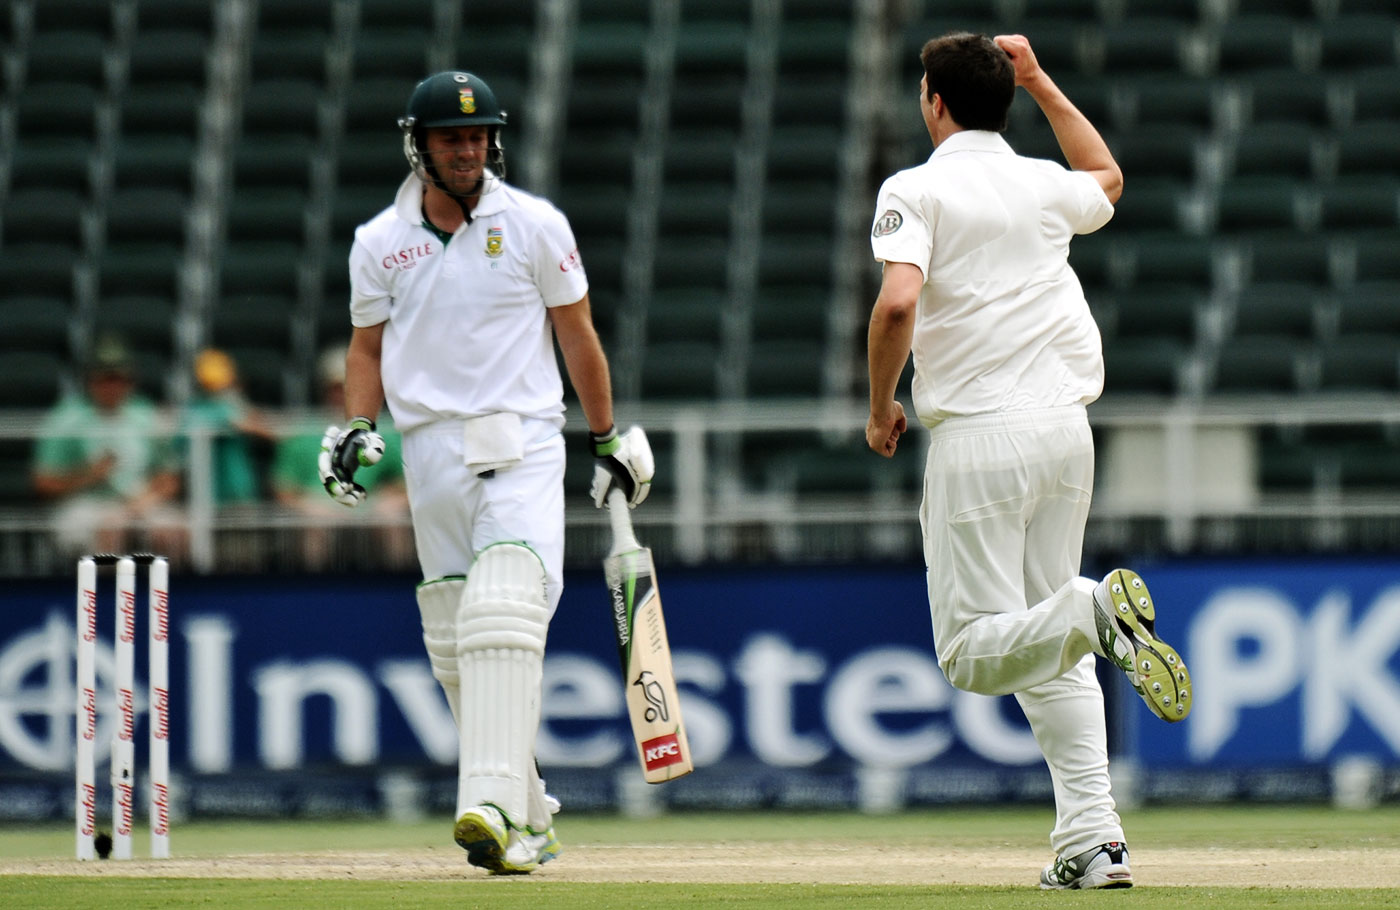 Big-ticket wicket: Cummins dismisses AB de Villiers on debut in Johannesburg, 2011